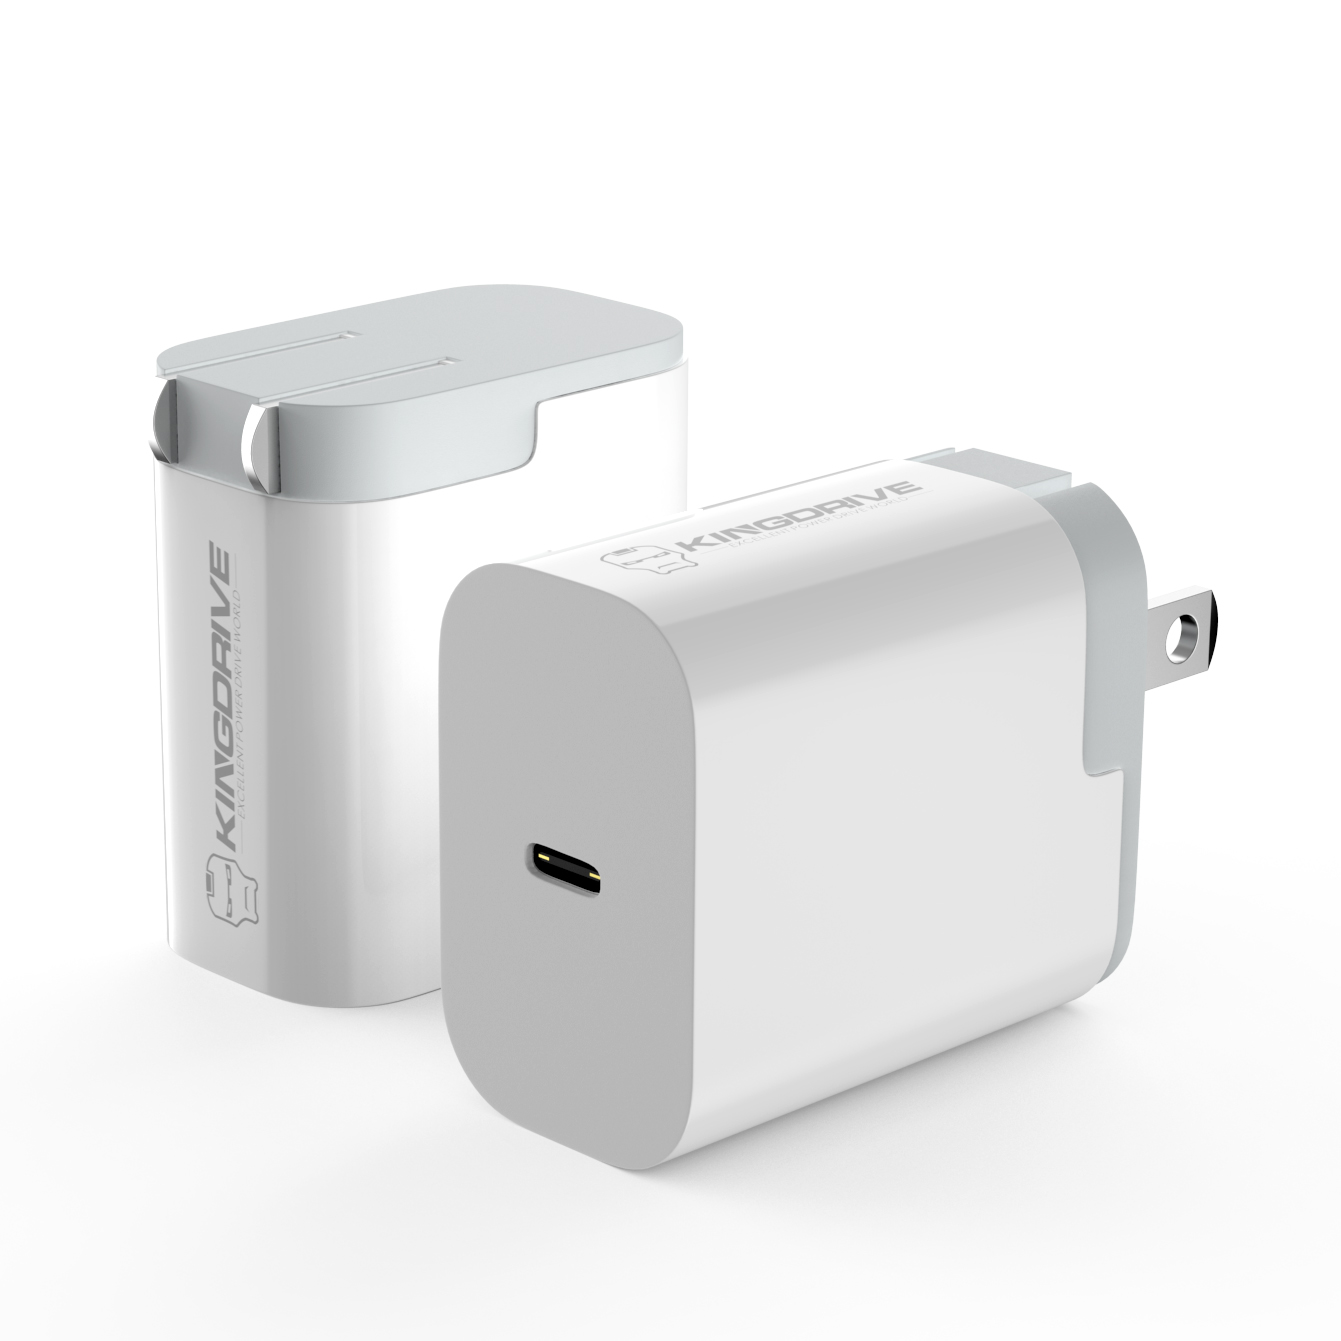 Hot Sell USB C Pd Charger Quick Charge QC 3.0 Wall Usb Charger